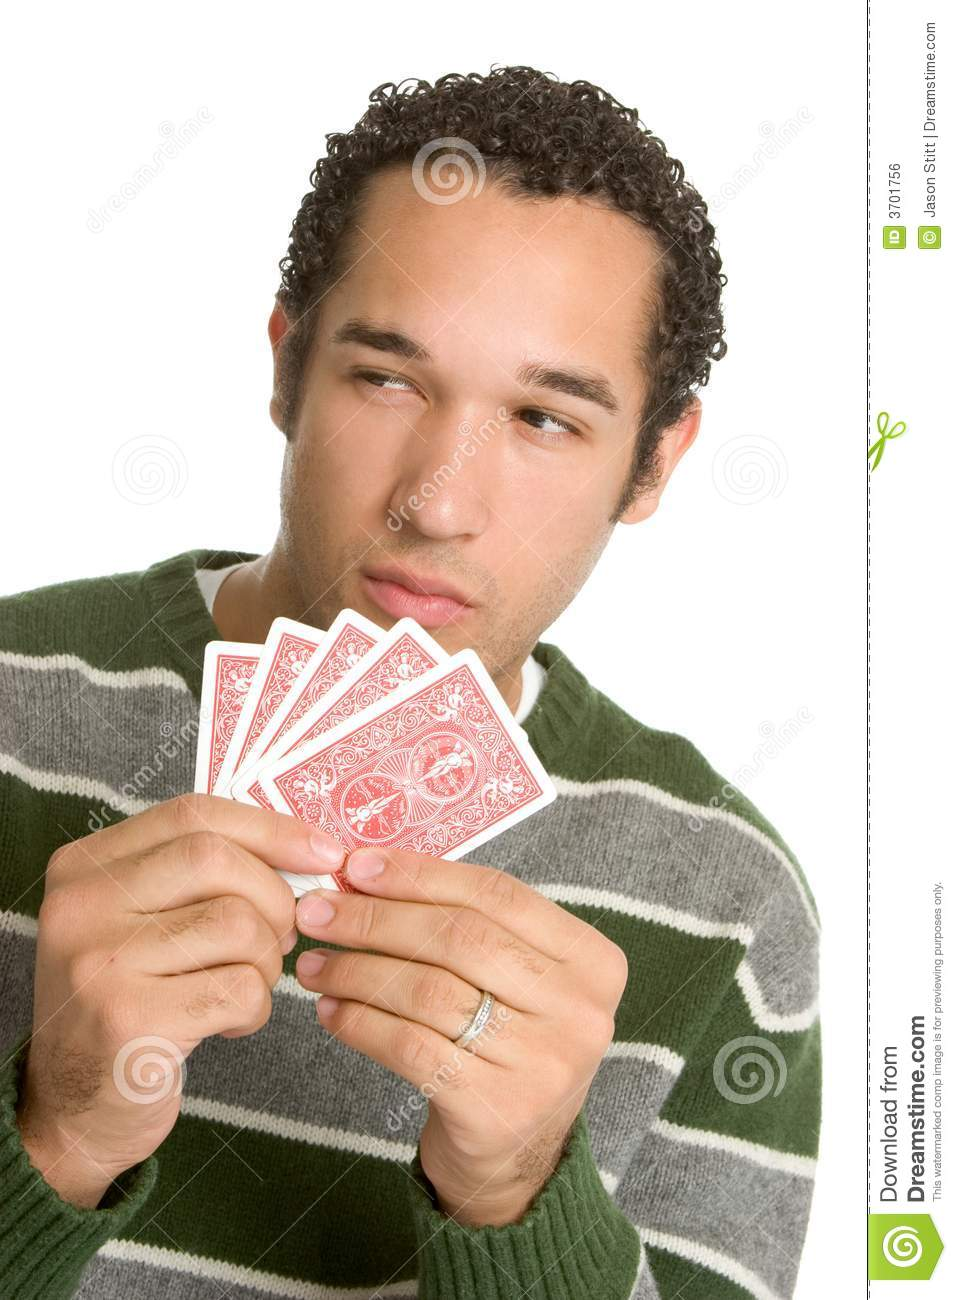 Man Holding Cards Royalty Free Stock Image